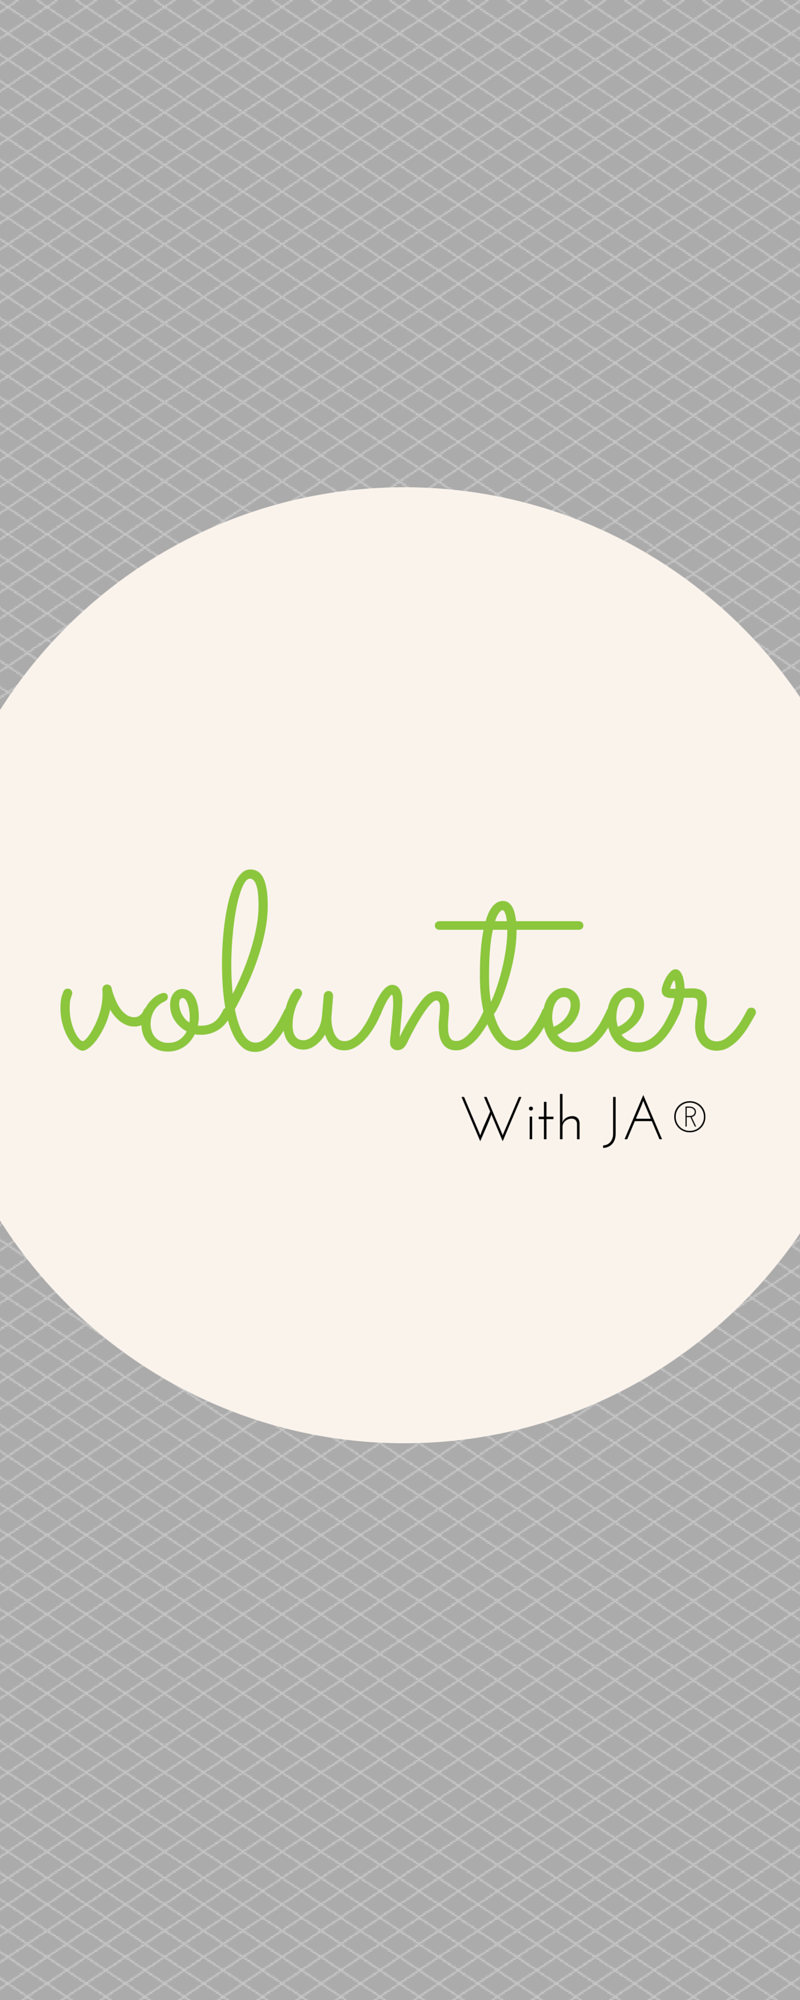 You can be their hero by being a JA® volunteer. We offer flexible training and volunteer opportunities in the classroom, at JA Finance Park®, or on-site at your company. Explore our opportunities, share your career and life experiences, and provide our region's youth with a window to the future.